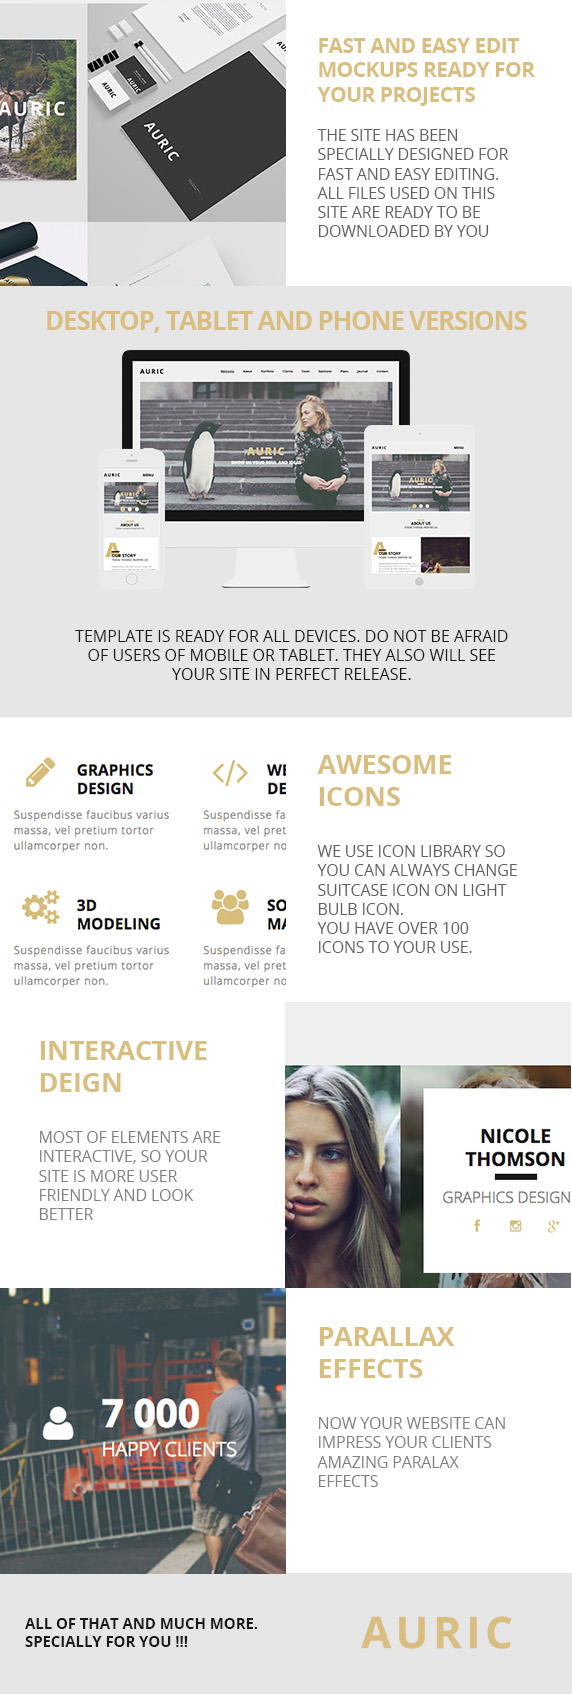 Auric - One Page Modern Muse Template - 3